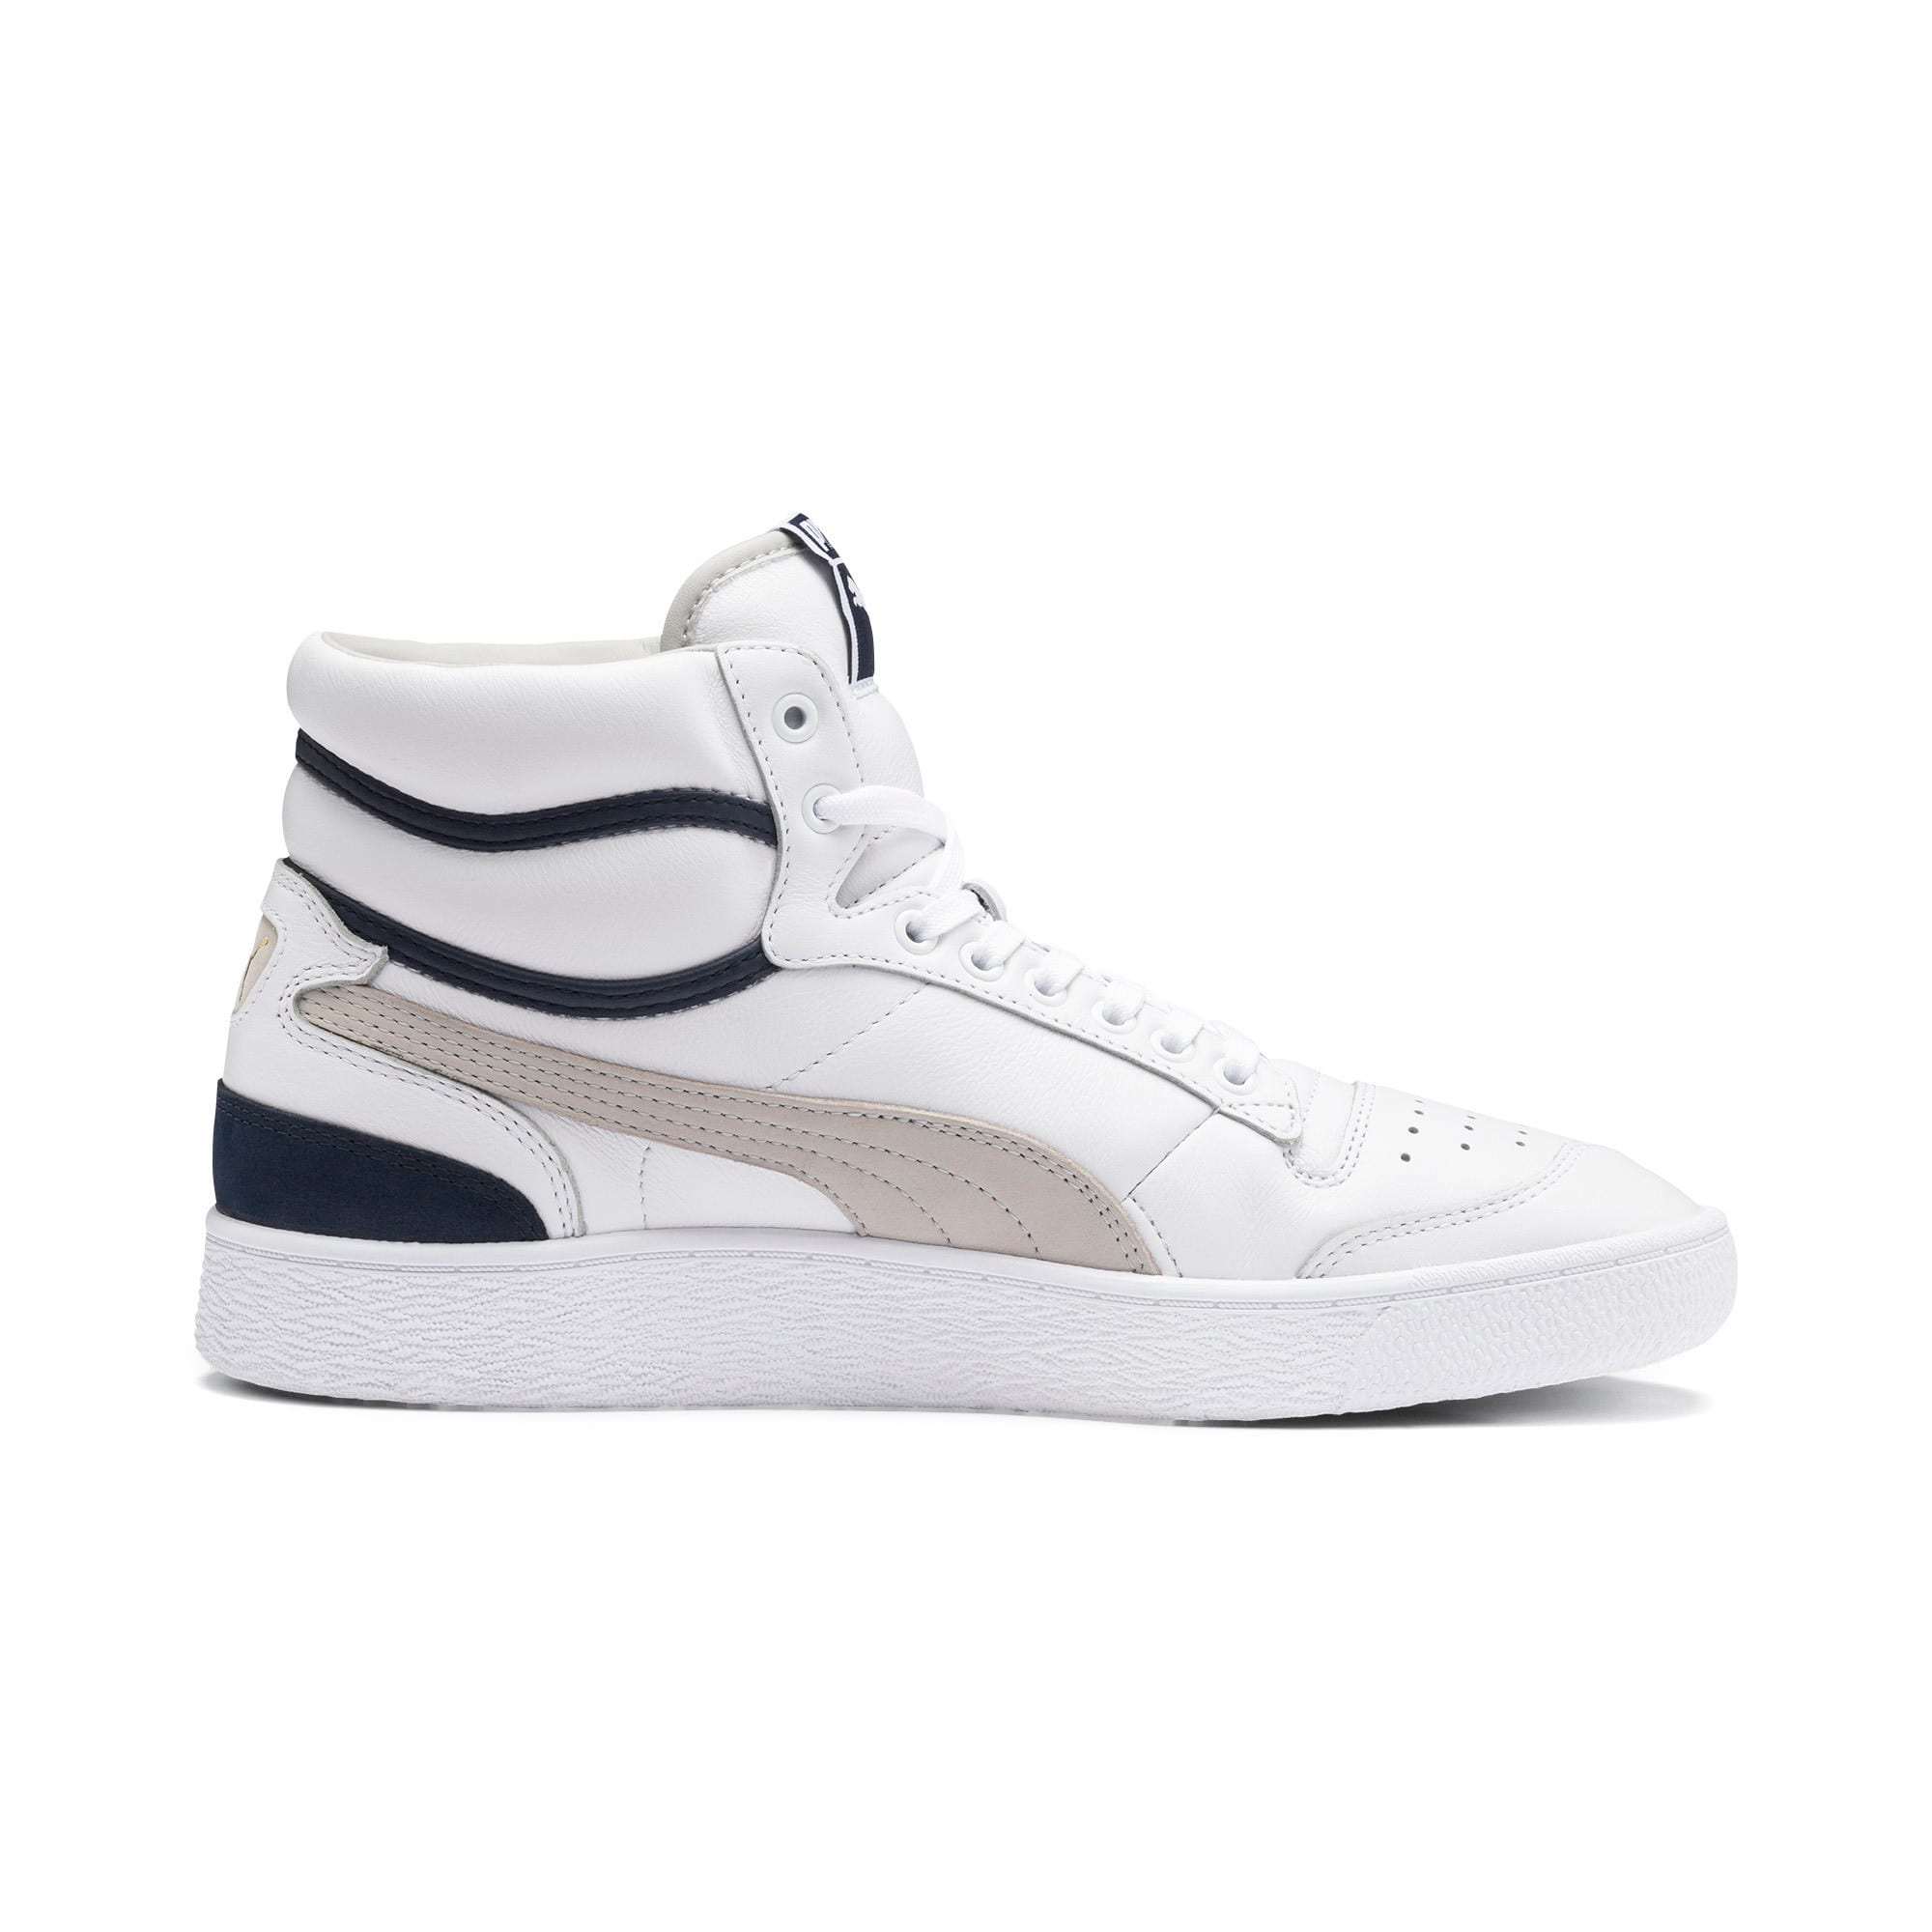 Ralph Sampson Mid OG Trainers, Puma Wht-Gray Violet-Peacoat, large